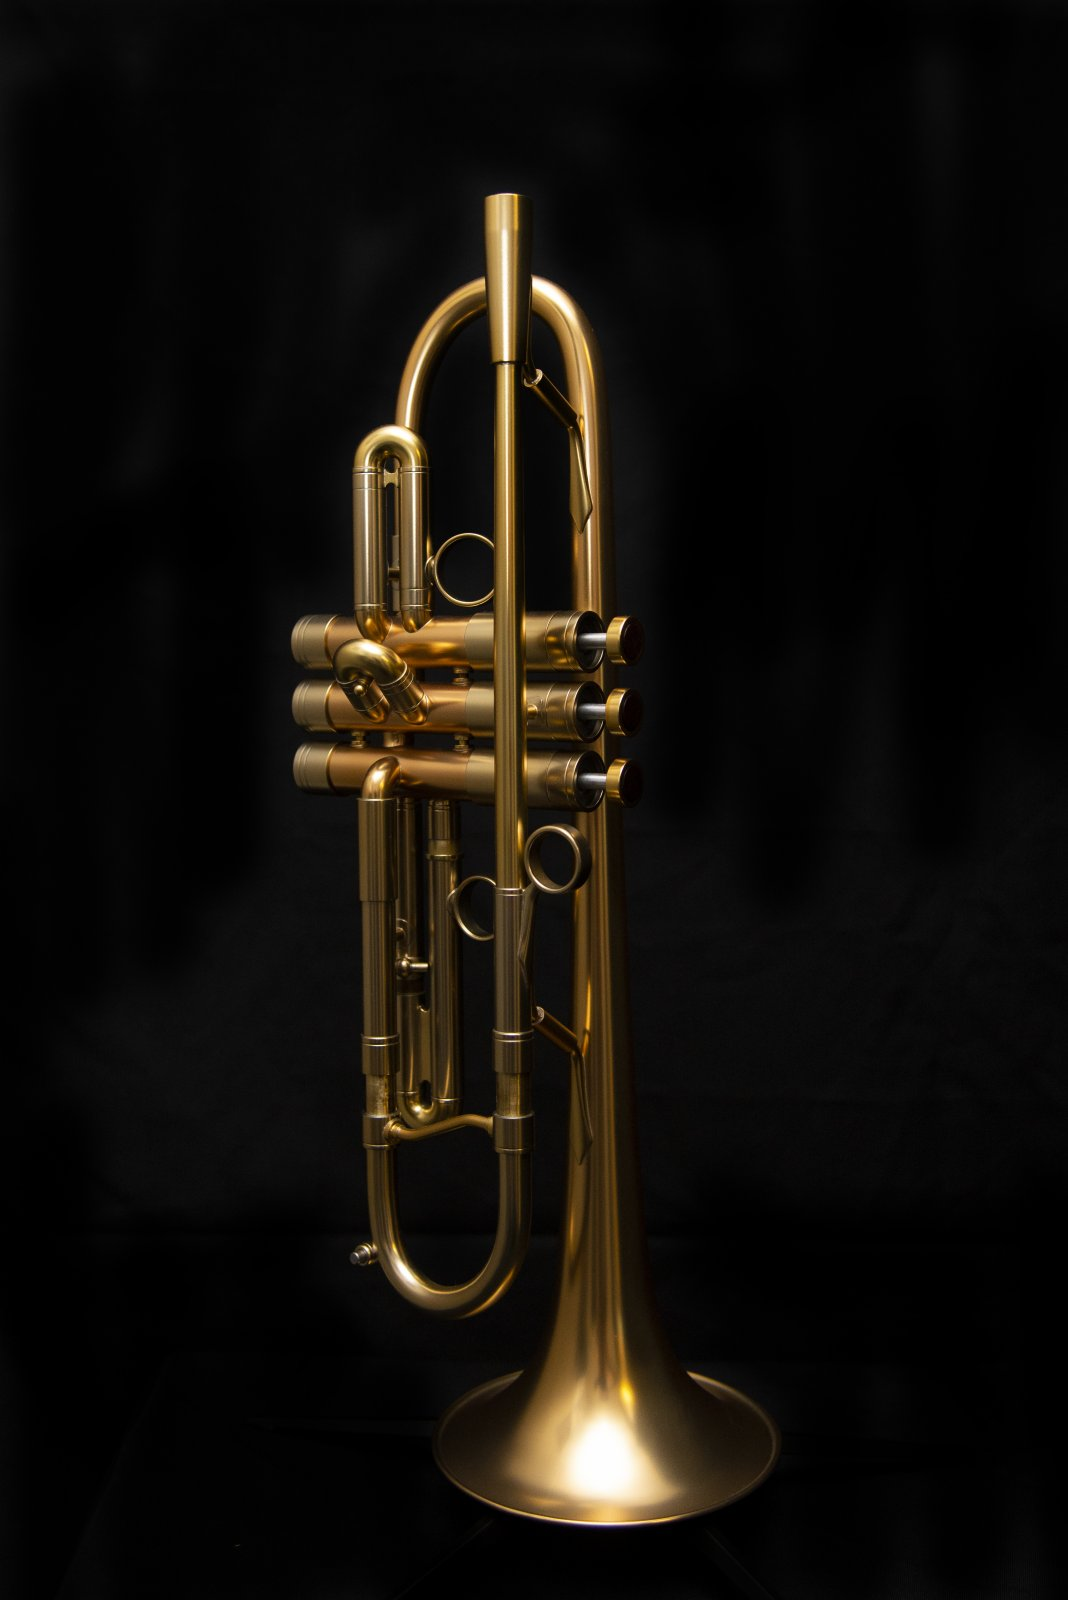 Adams A4 Custom Bb Trumpet